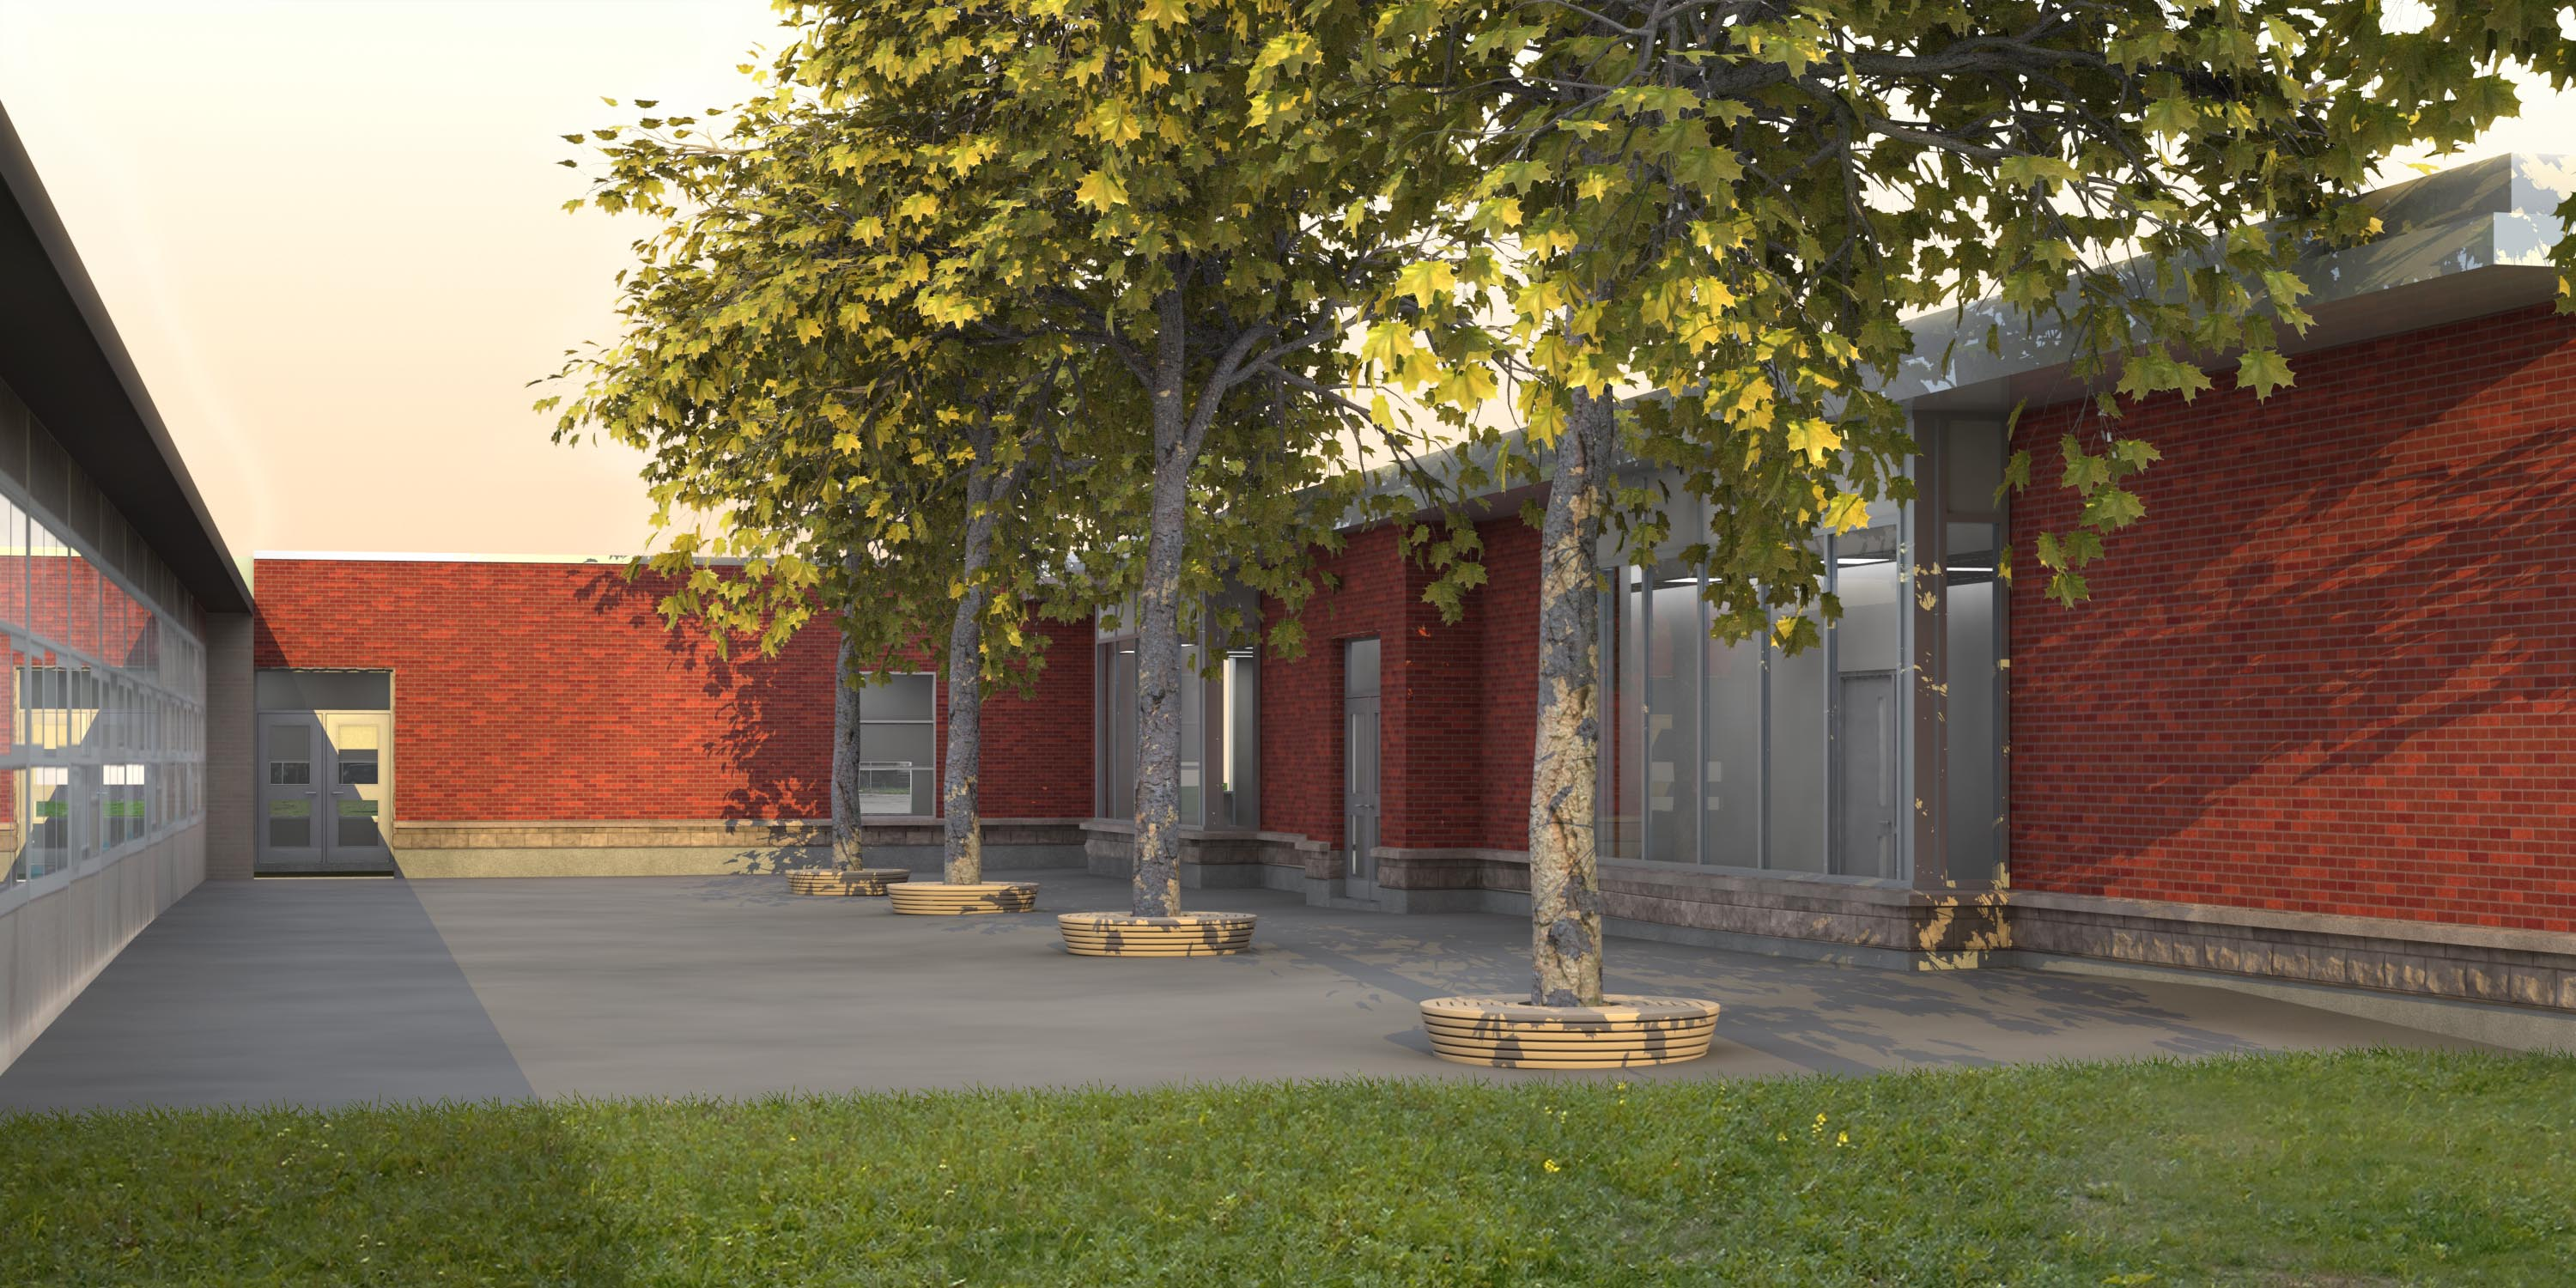 Cost Management for the Ecole Elementaire Marie-Curie Elementary ...